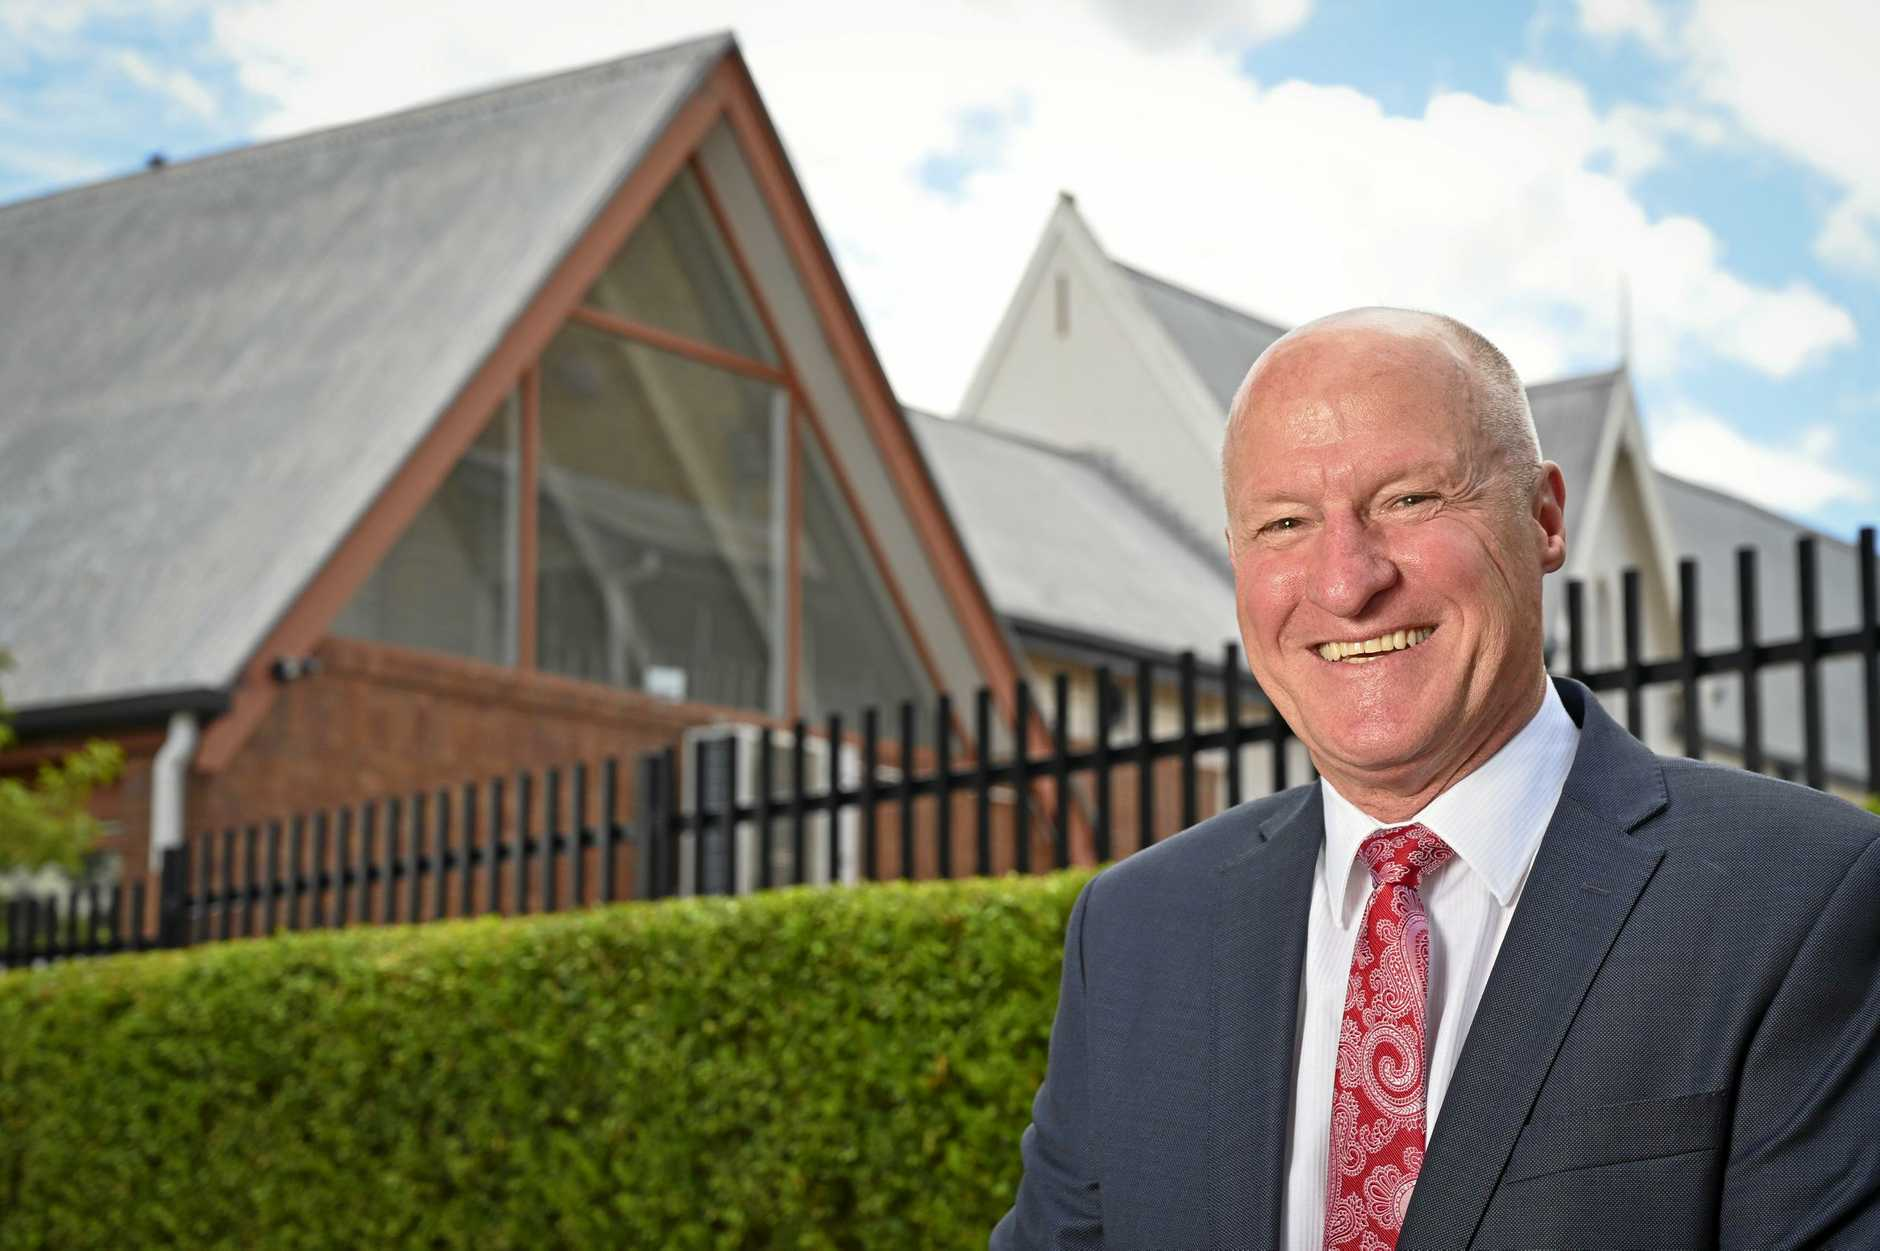 Richard Morrison, Headmaster/CEO of Ipswich Grammar School.